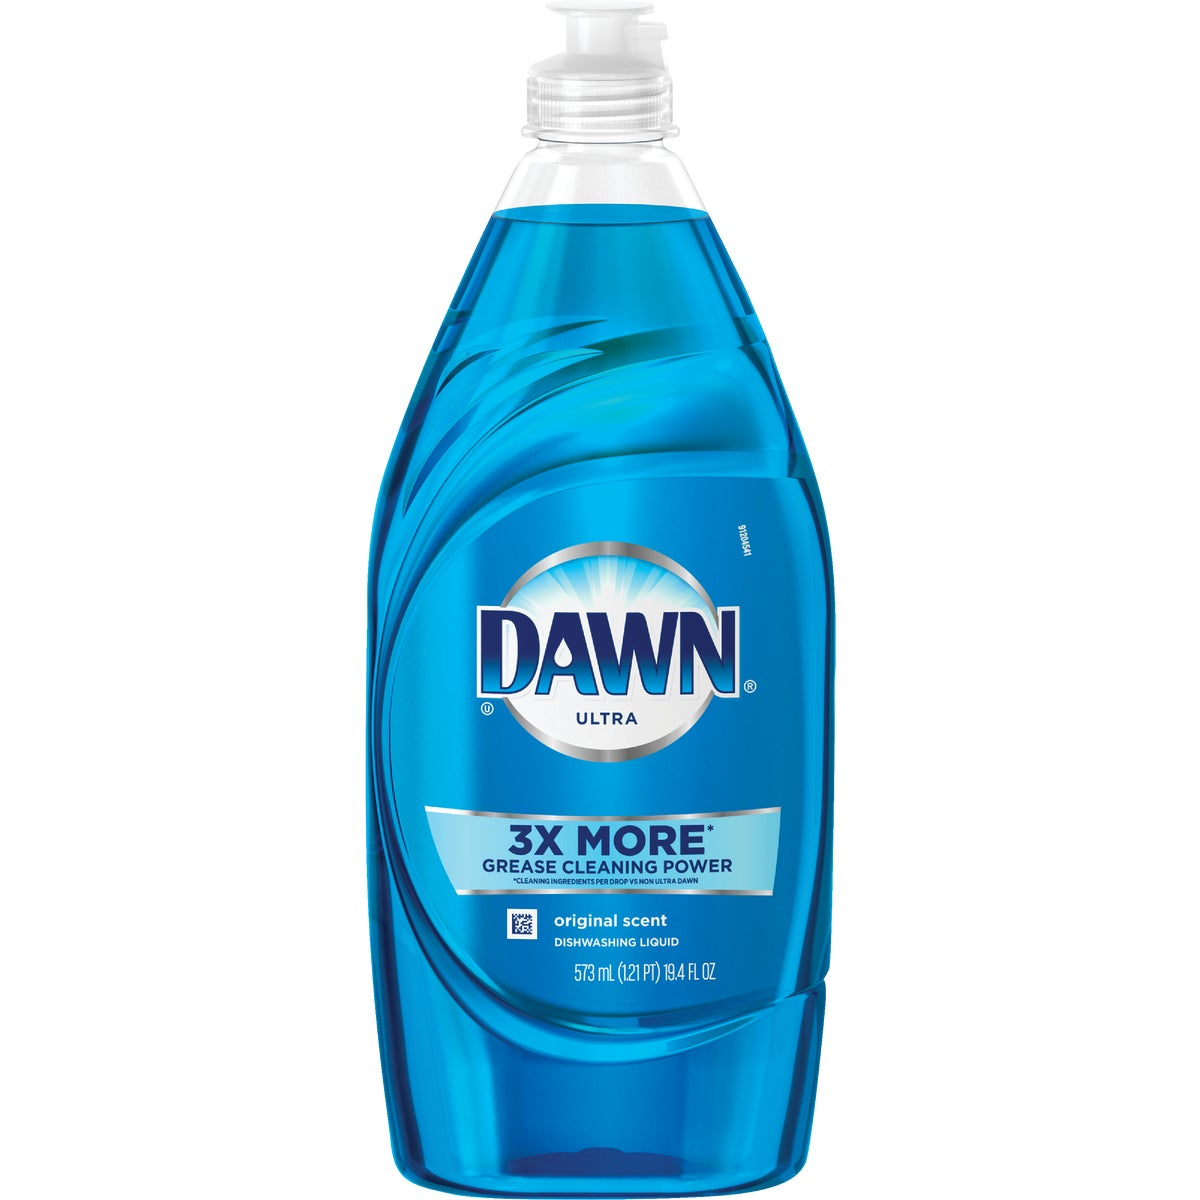 24OZ ORIG DAWN DISH SOAP